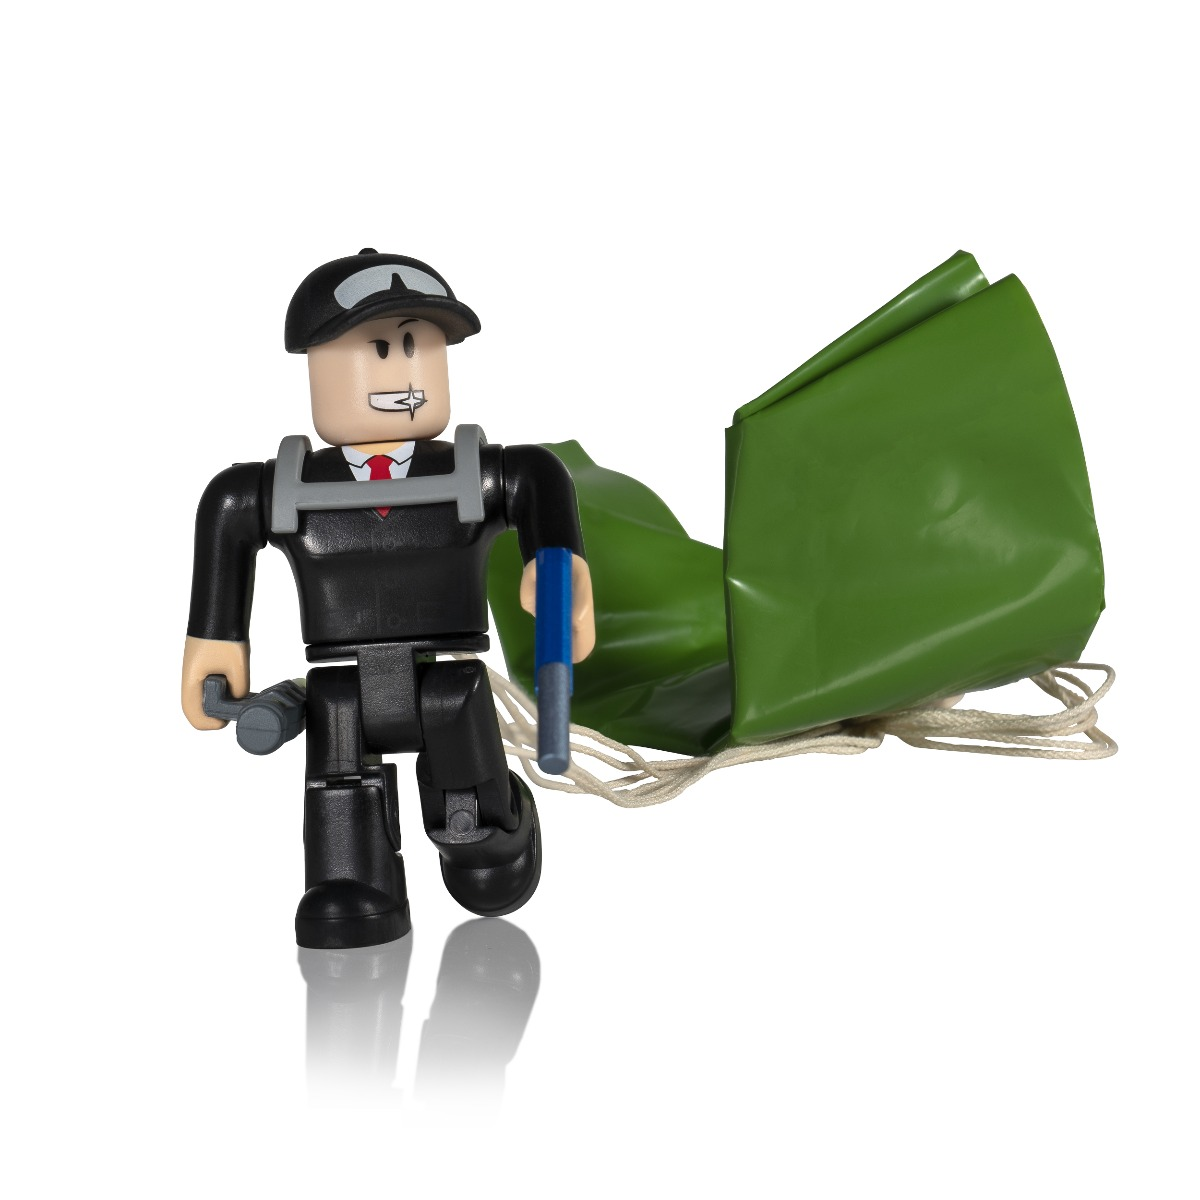 Figurina Roblox, Jailbreak Secret Agent, S8